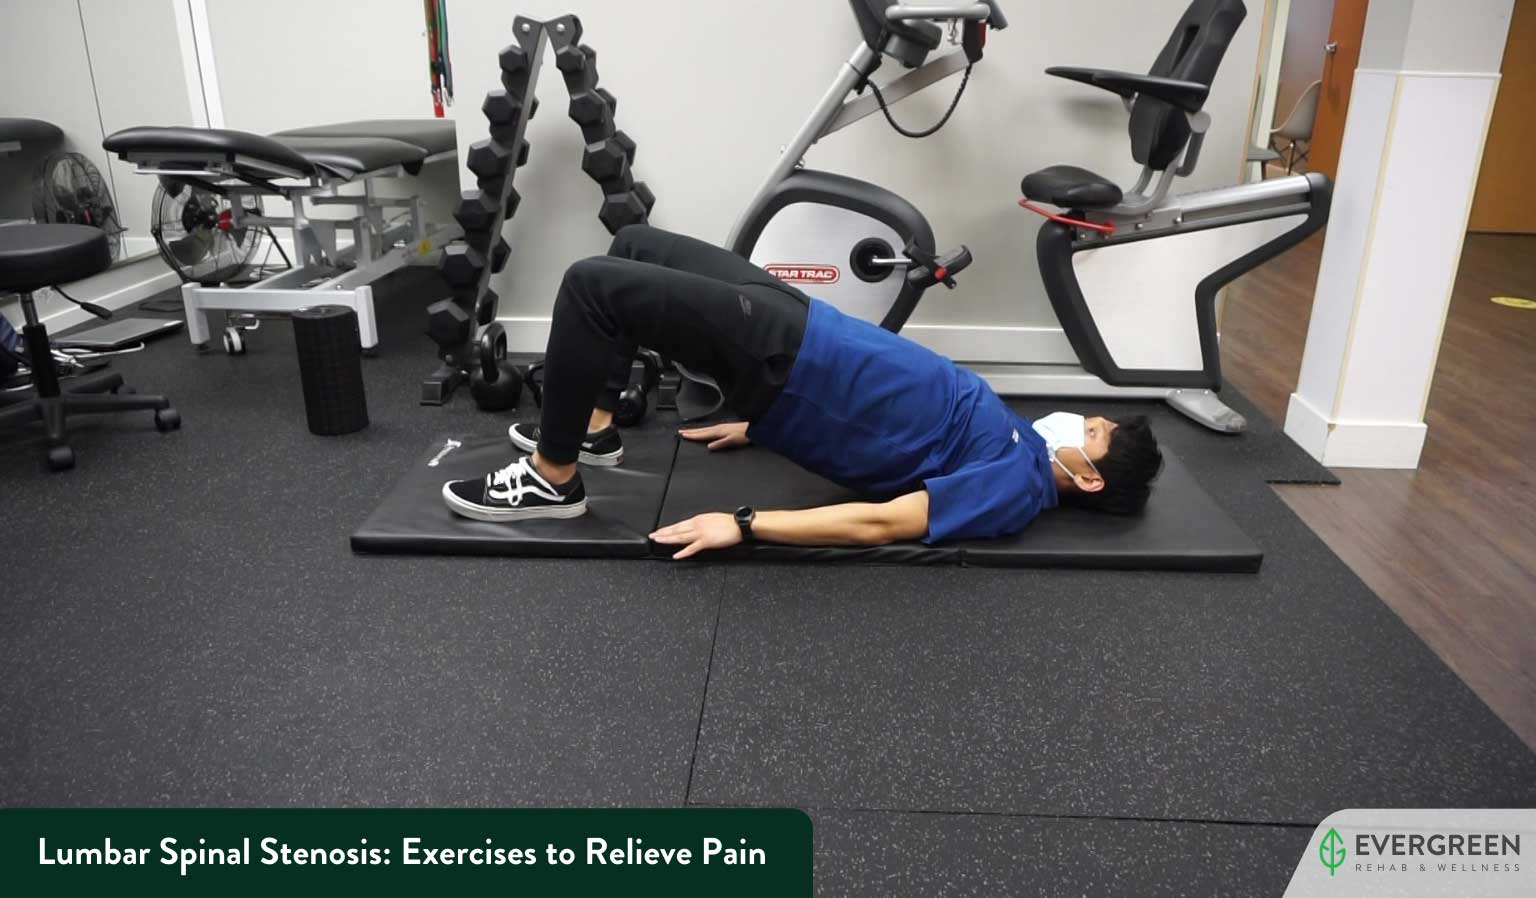 Lumbar Spinal Stenosis: Exercises to Relieve Pain